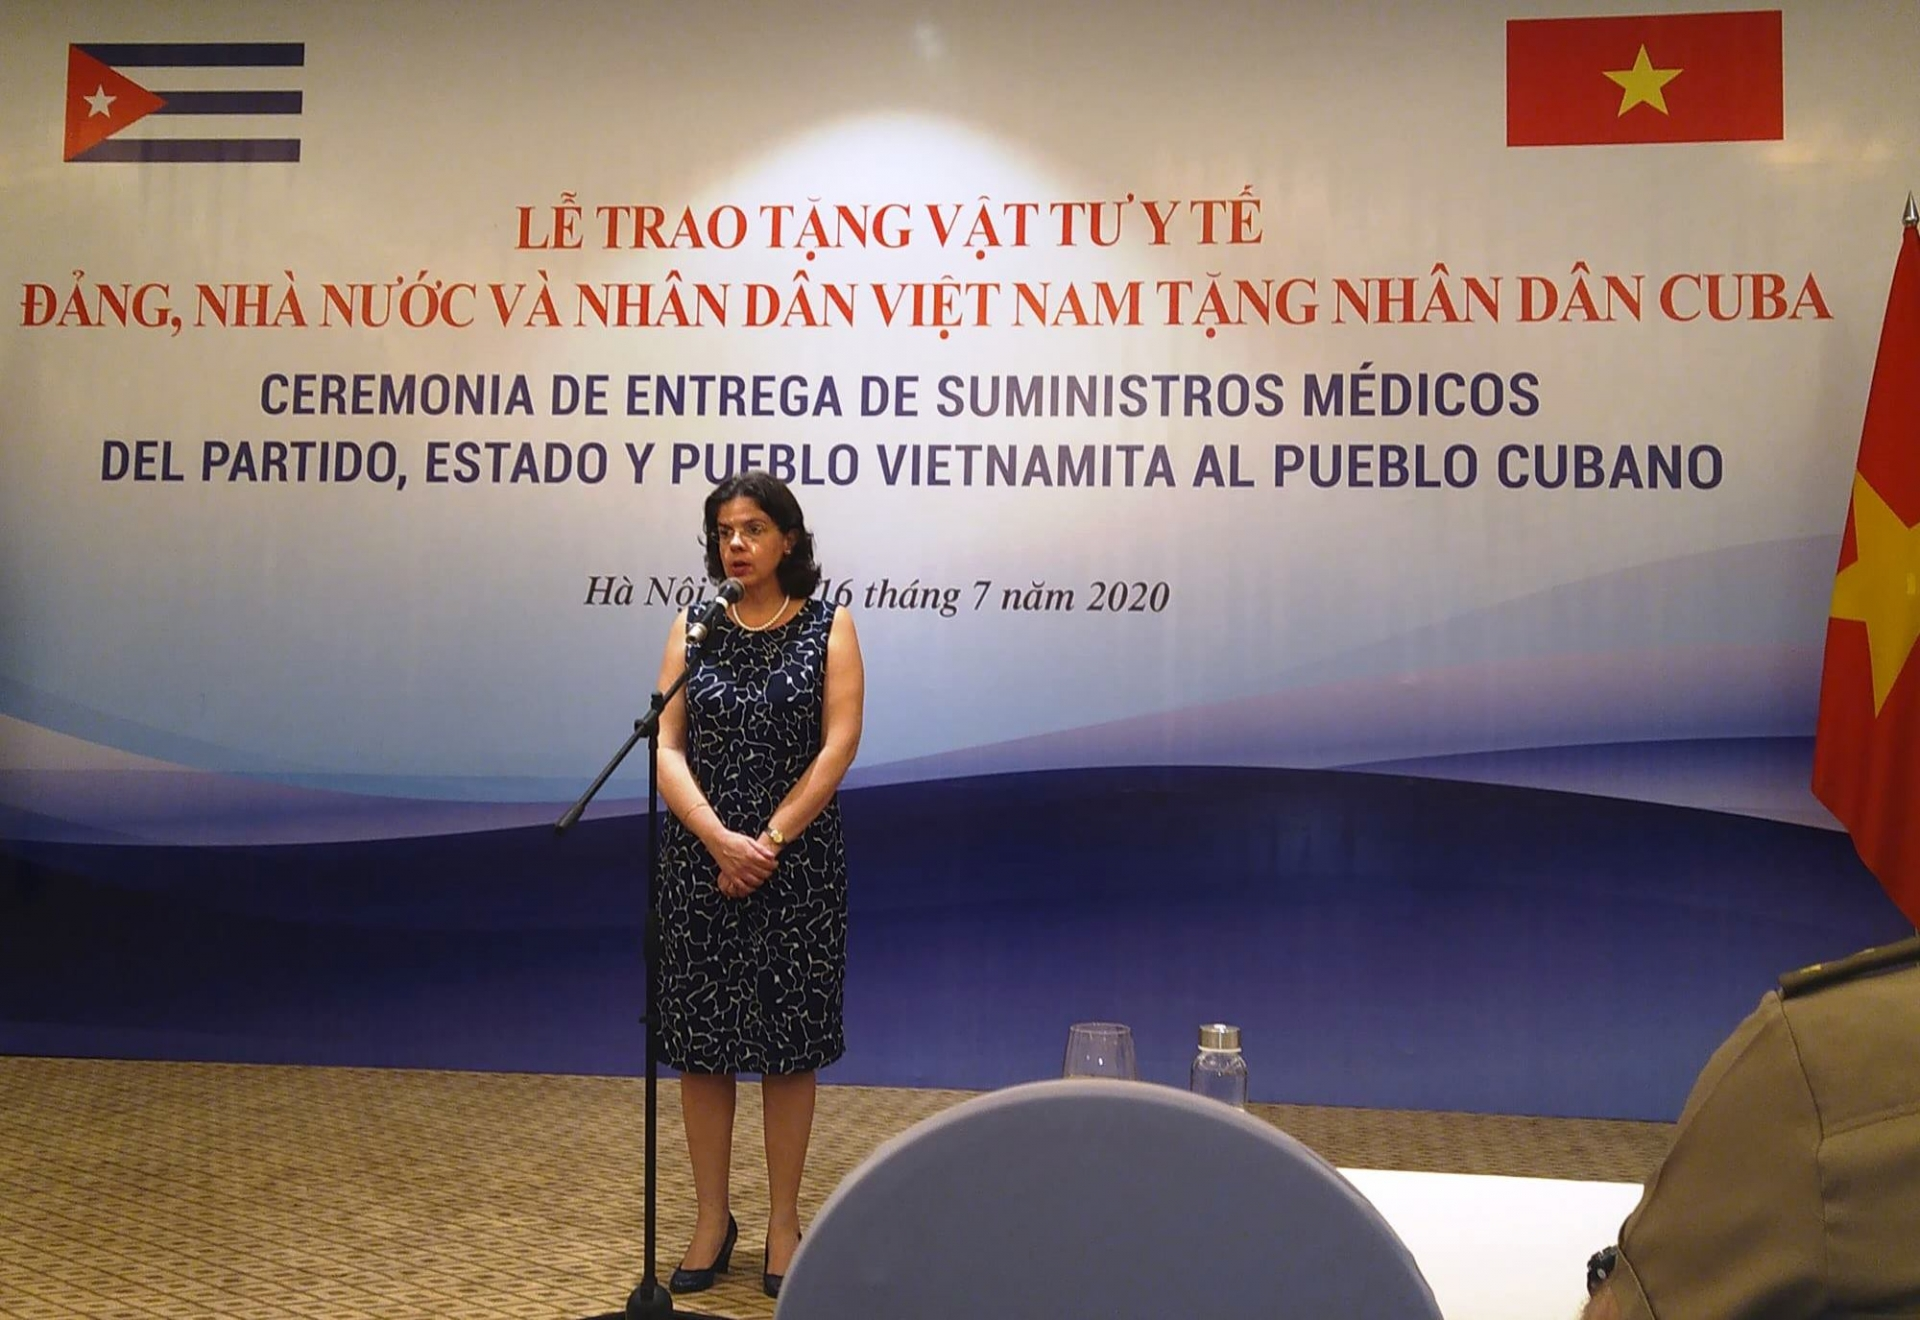 cubas ambassador we have never abandoned each other even in the most difficult situation